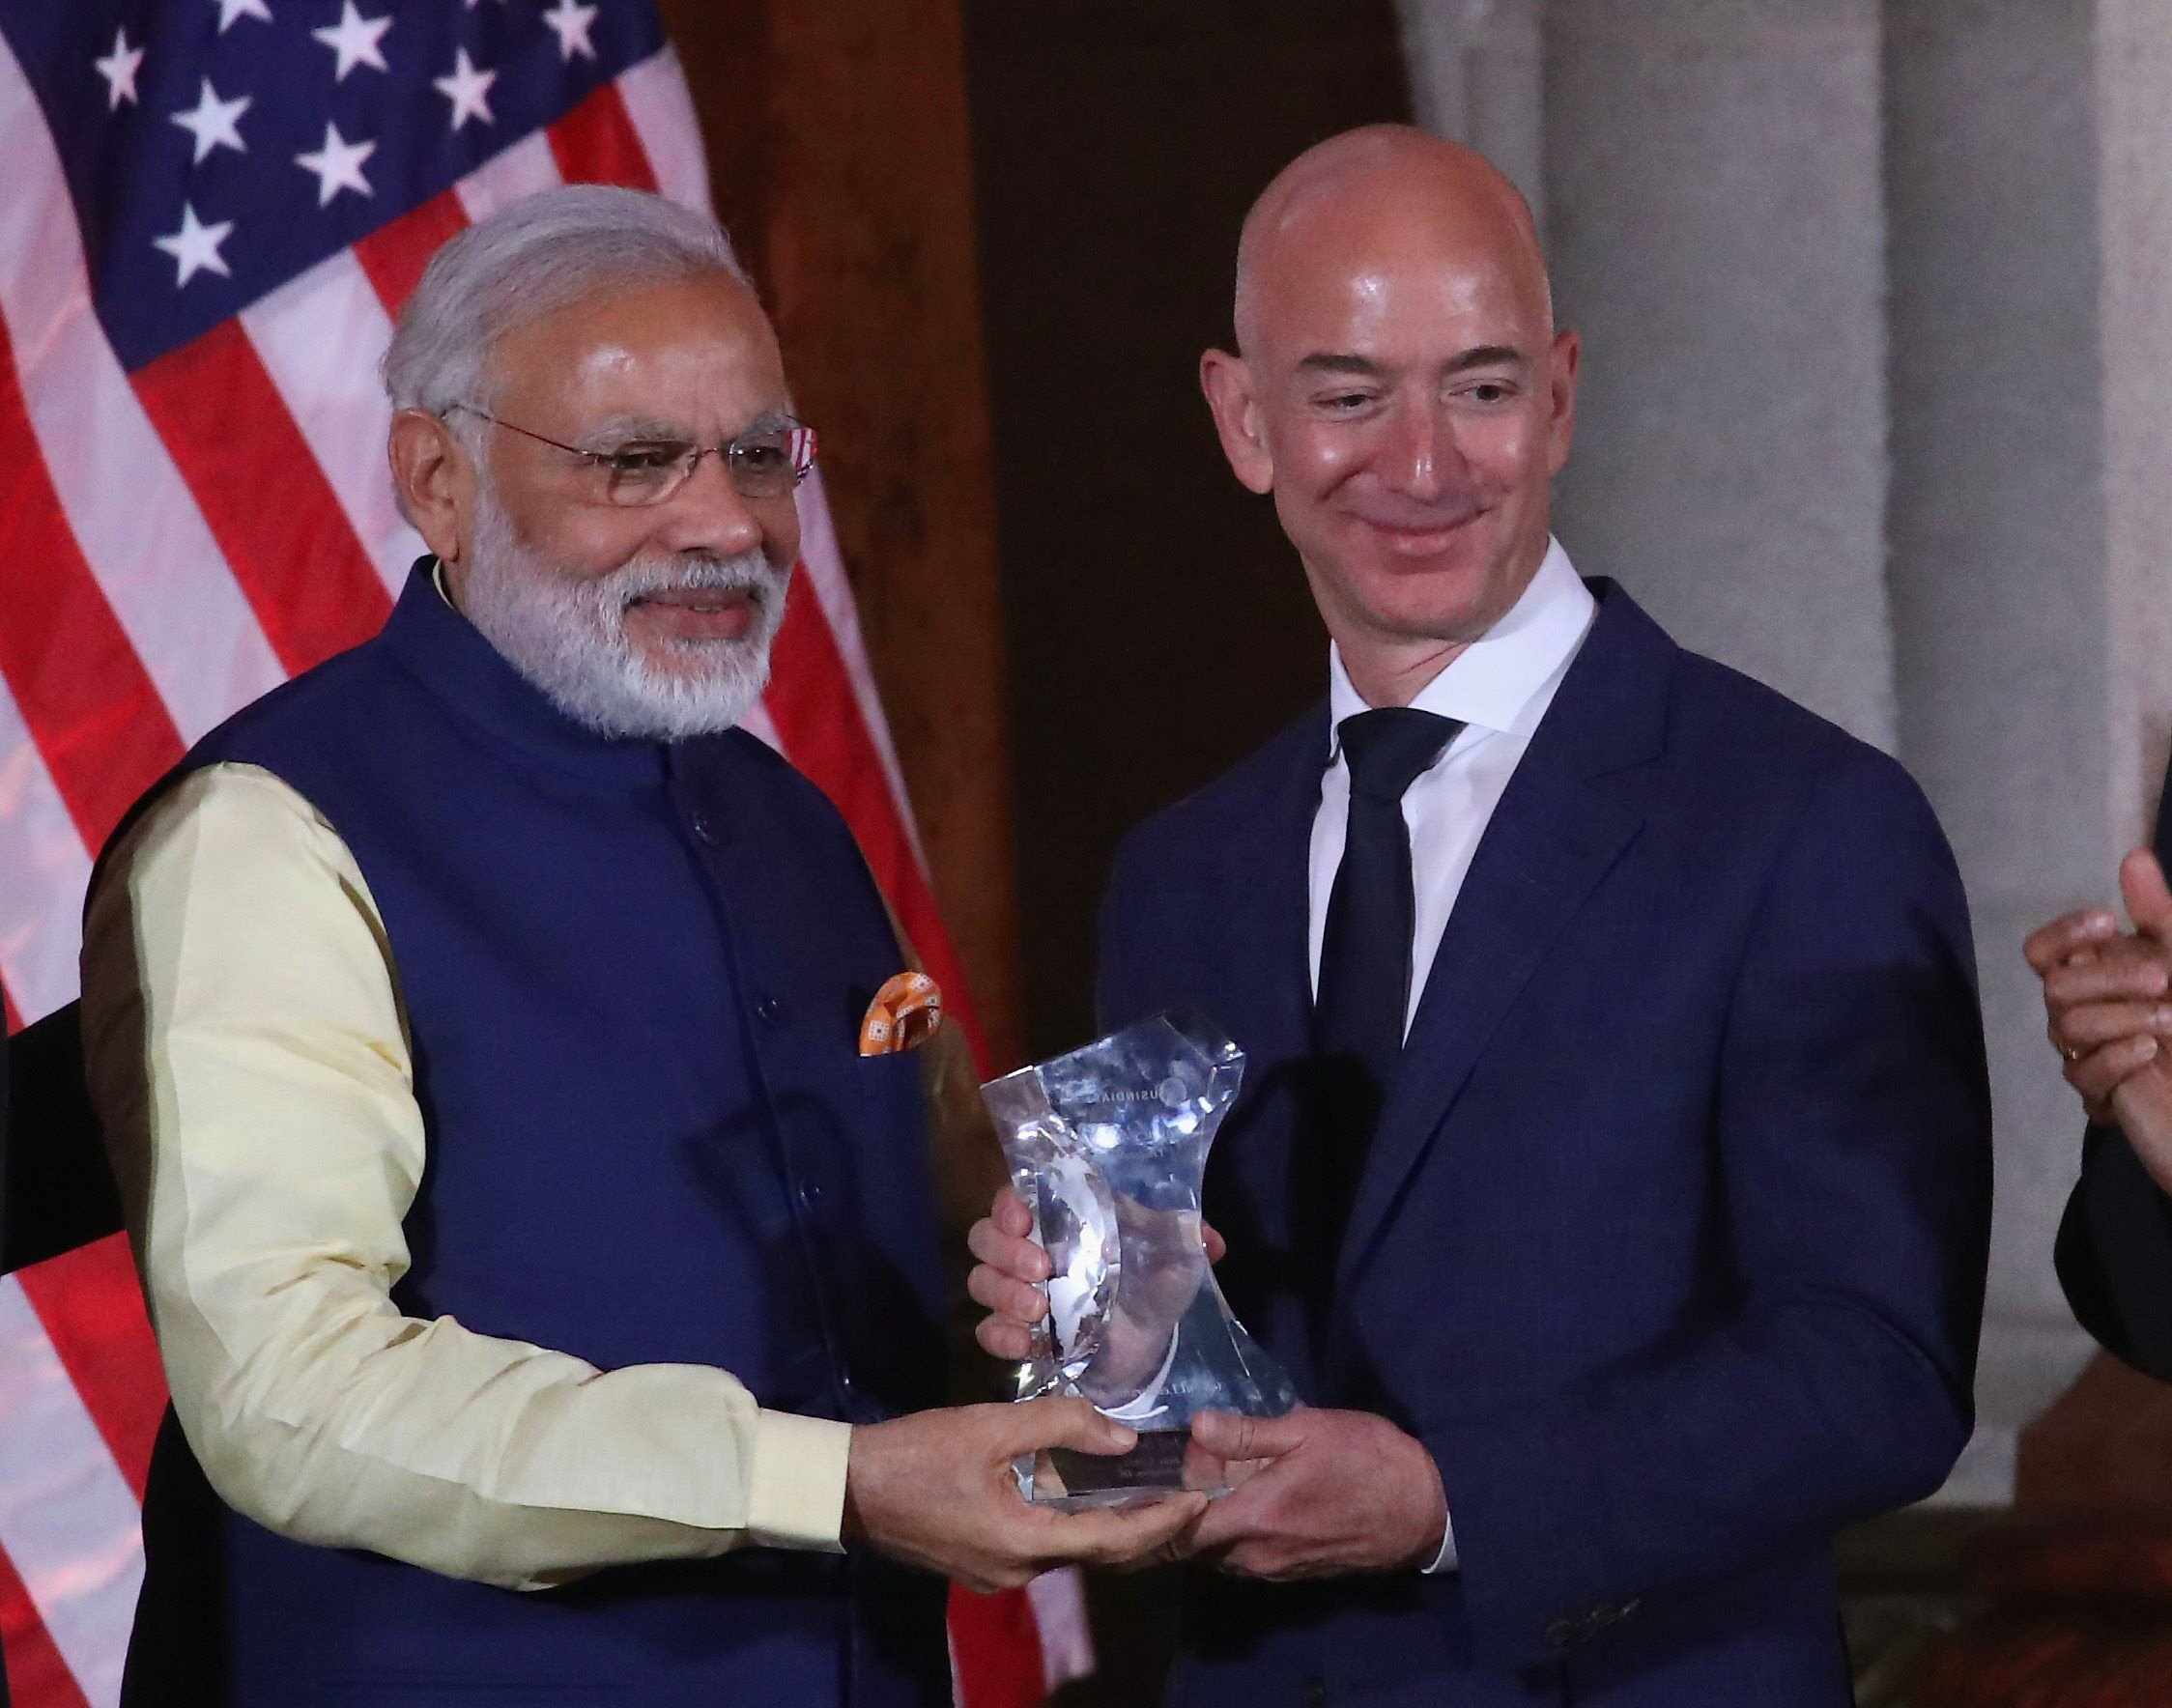 Jeff Bezos, (R), CEO of Amazon, is presented with the 2016 USIBC Global Leadership Award by Indian Prime Minister Narendra Modi during the 41st Annual Leadership Summit at the Mellen Auditorium, June 7, 2016 in Washington, DC. PHOTO: AFP